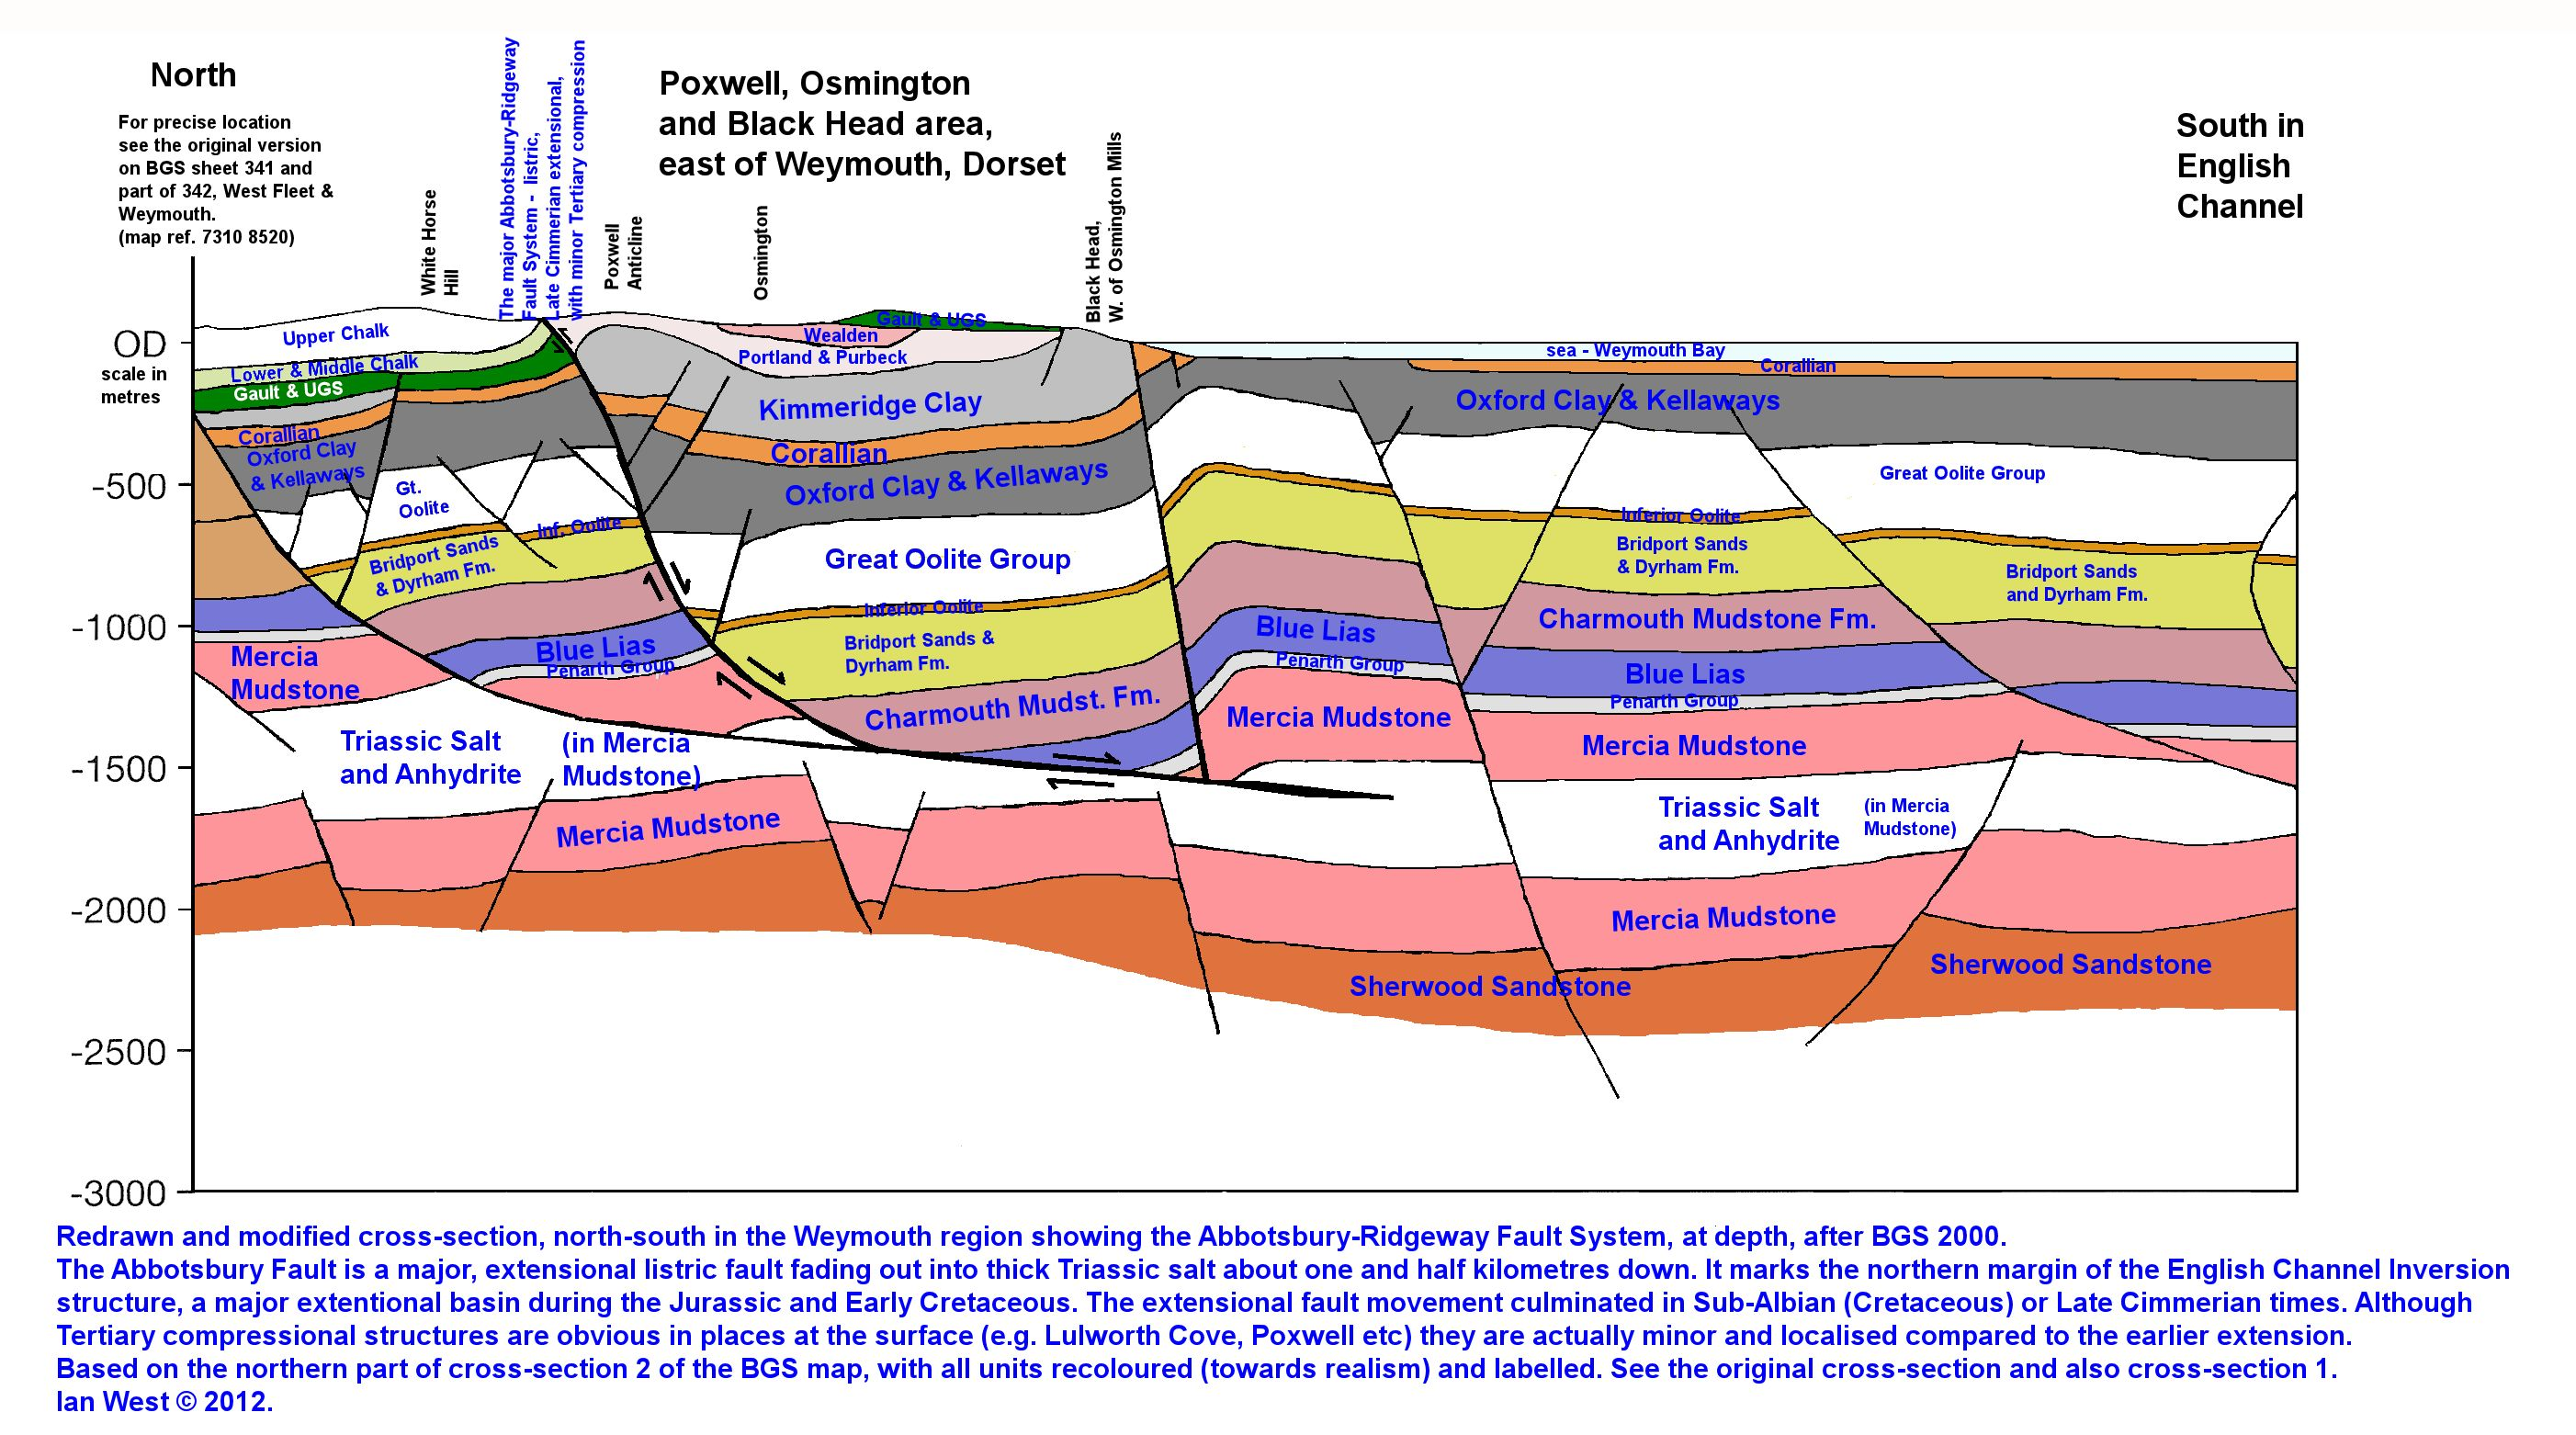 the formation of wessex basin Geology of the kellaways, oxford clay and osgodby formation the kellaways the top of these formations is deepest within the centre of the wessex basin.